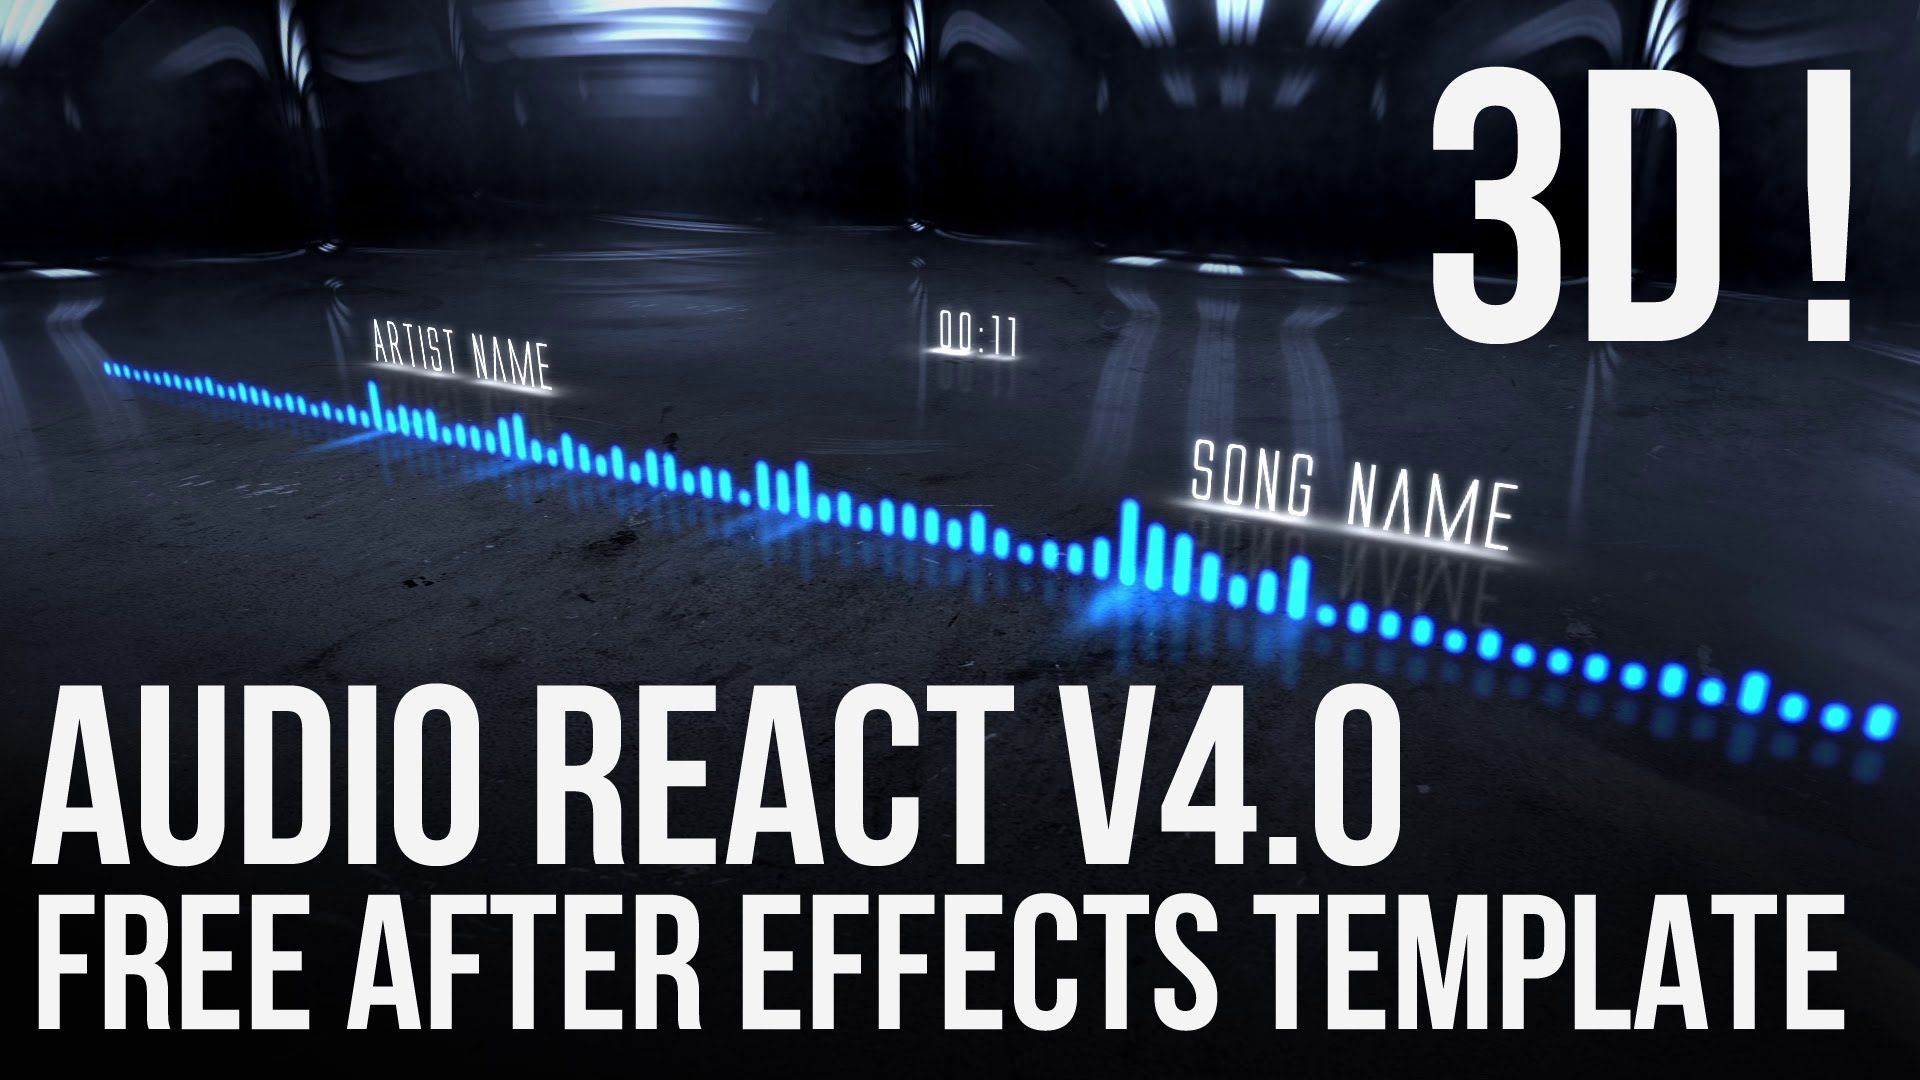 After Effects FREE 3D Template - Audio React v4 0 (Project Files/No